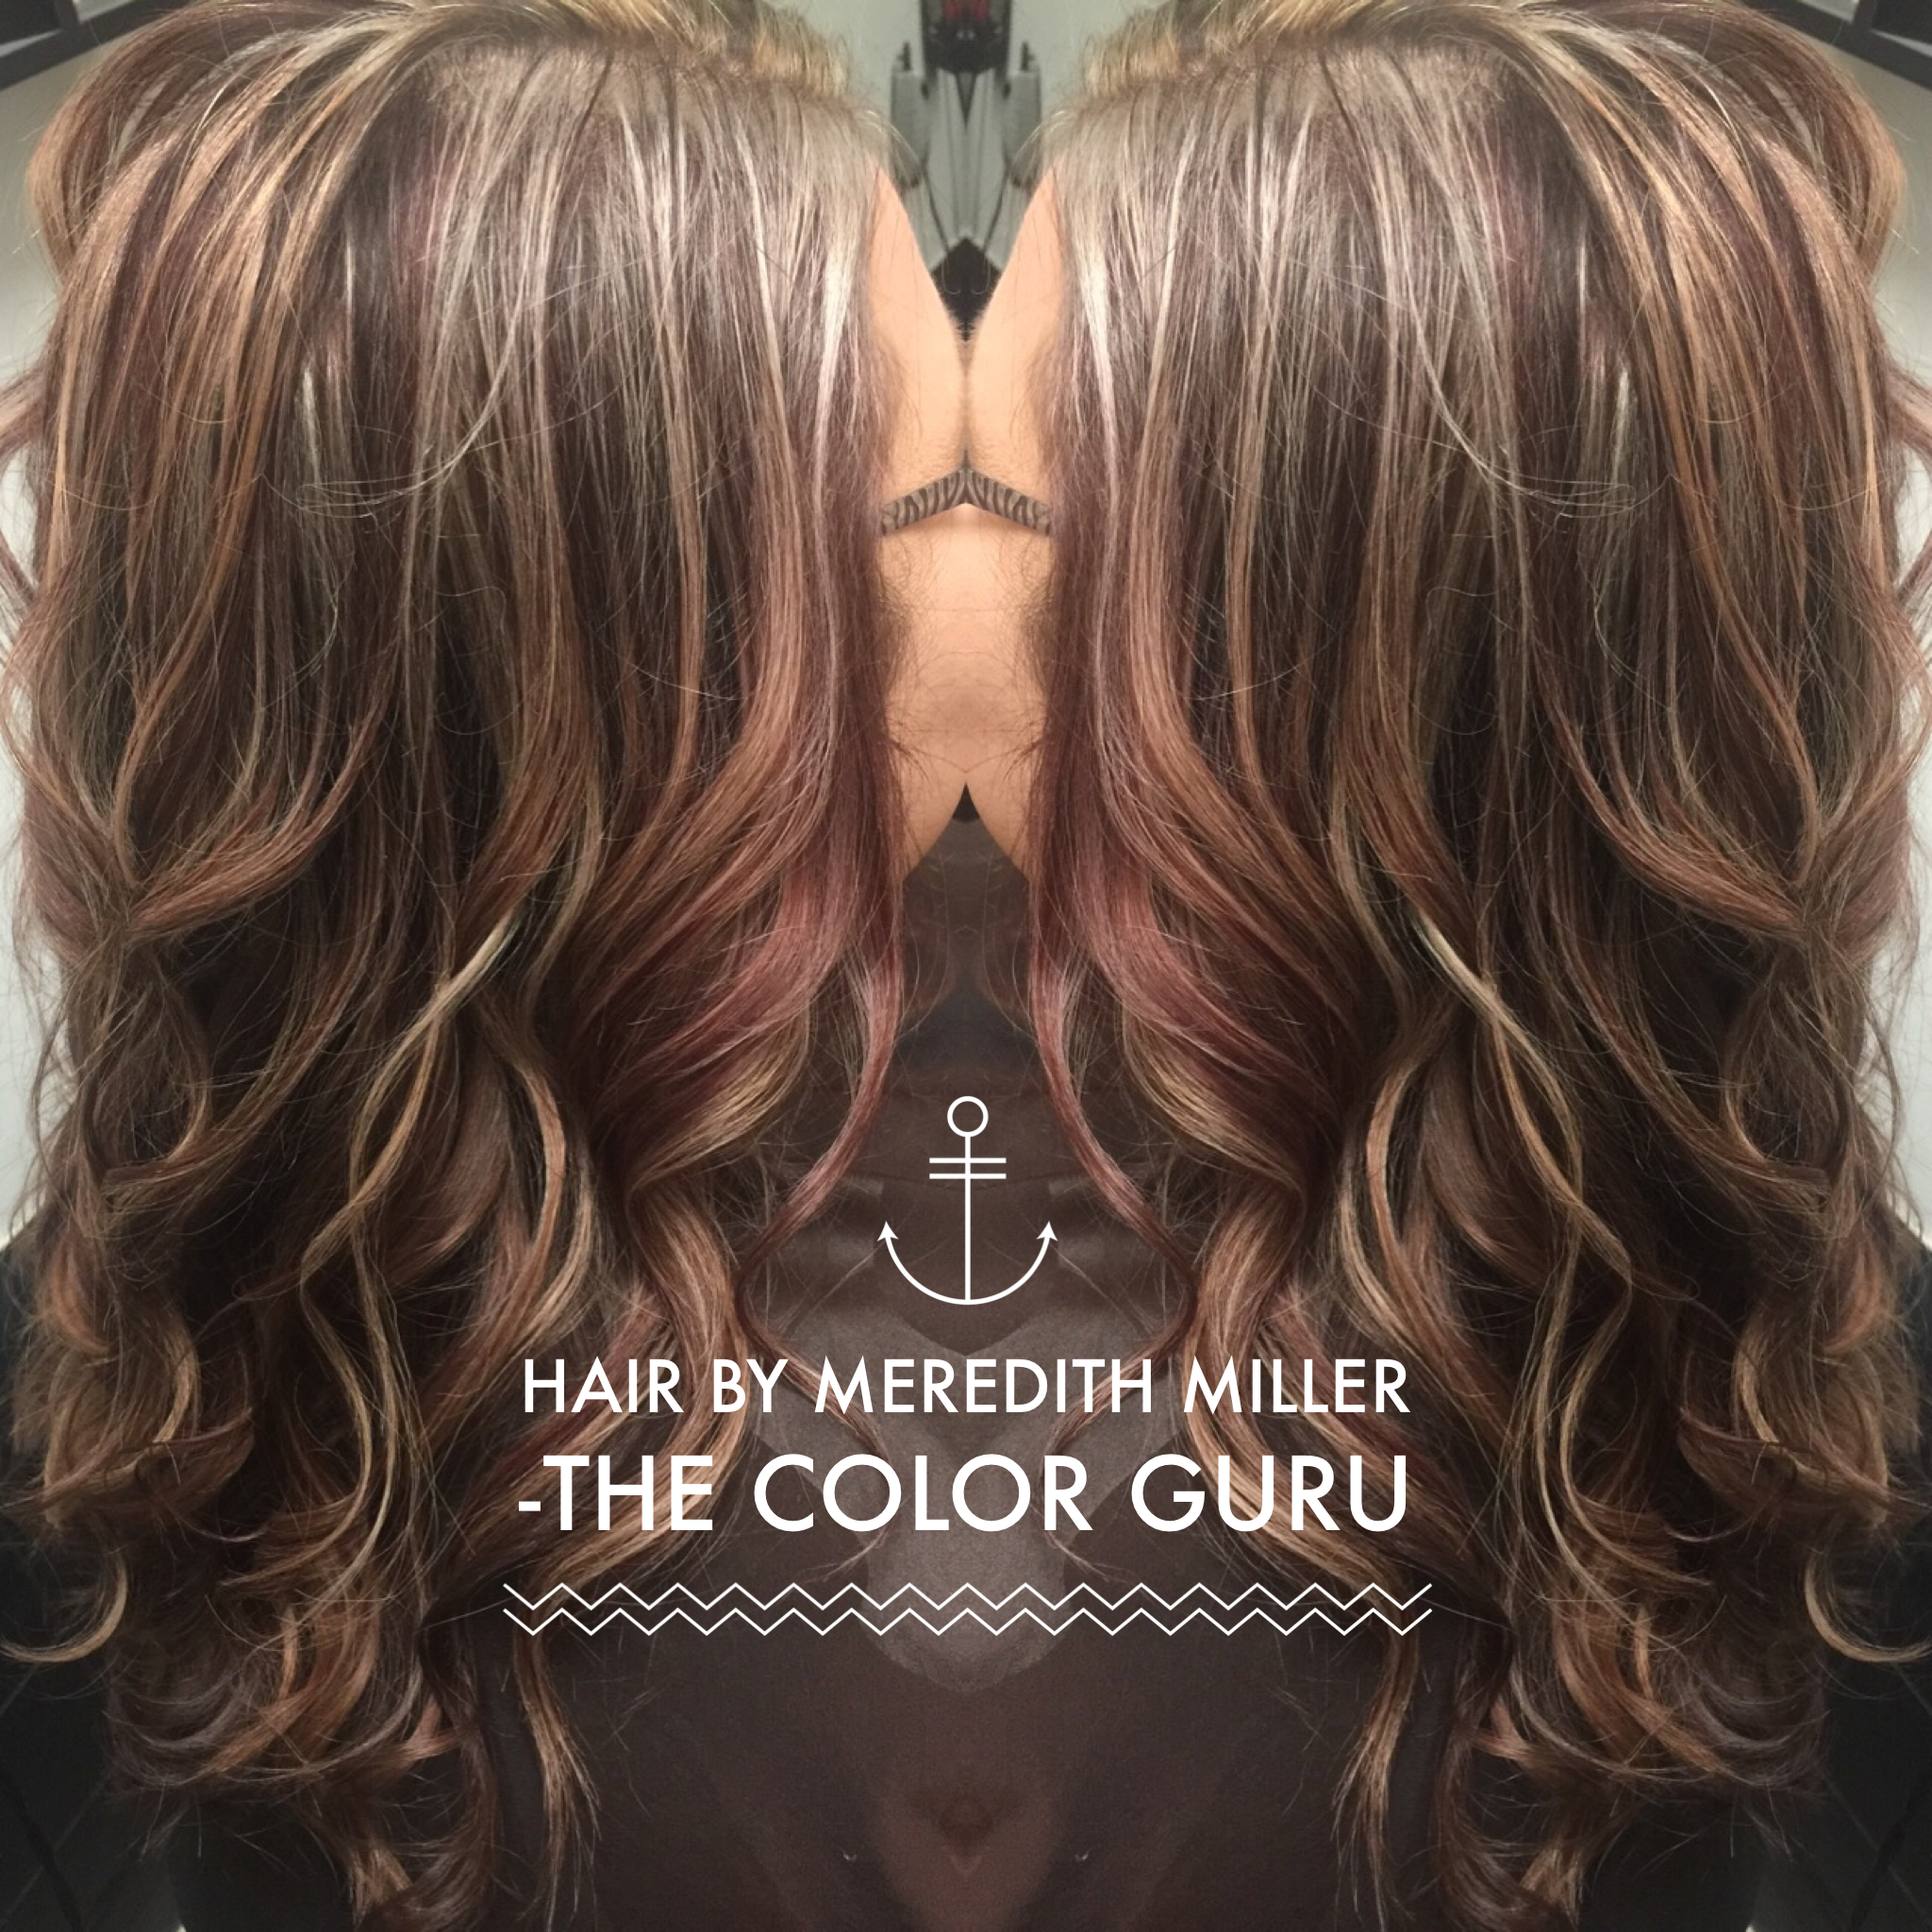 Blonde Highlights With Mocha Red Lowlights Done By Meredith Miller